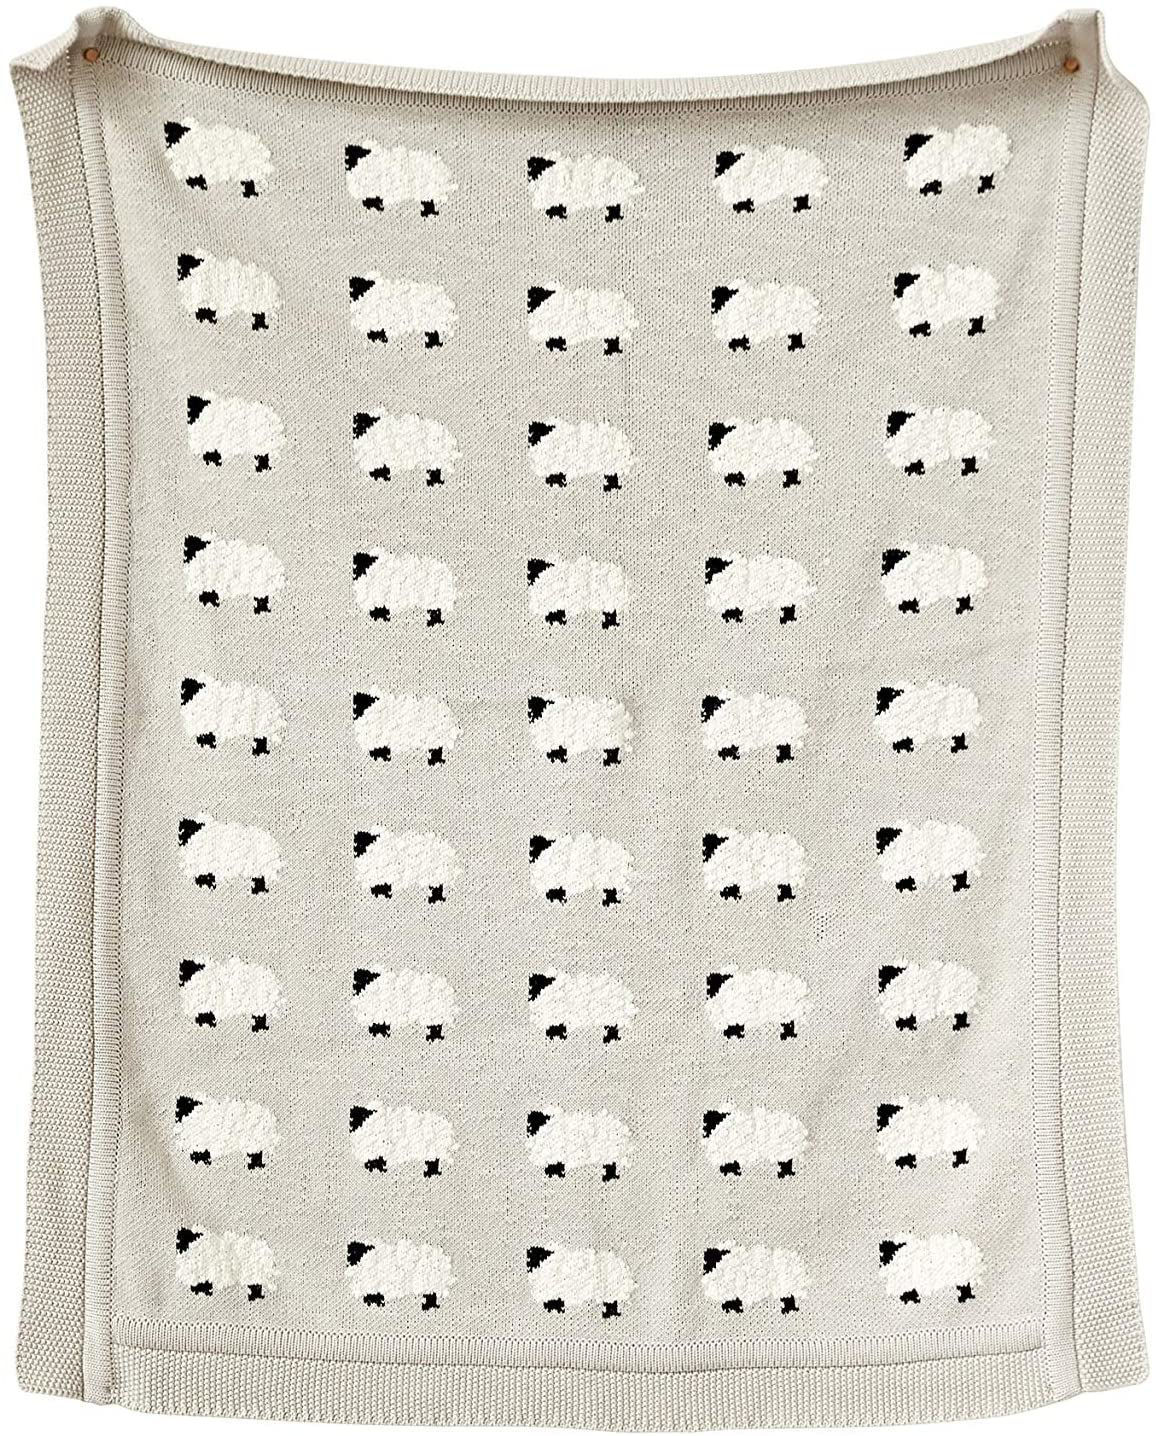 Baby Blanket w/Sheep by Creative Co-op